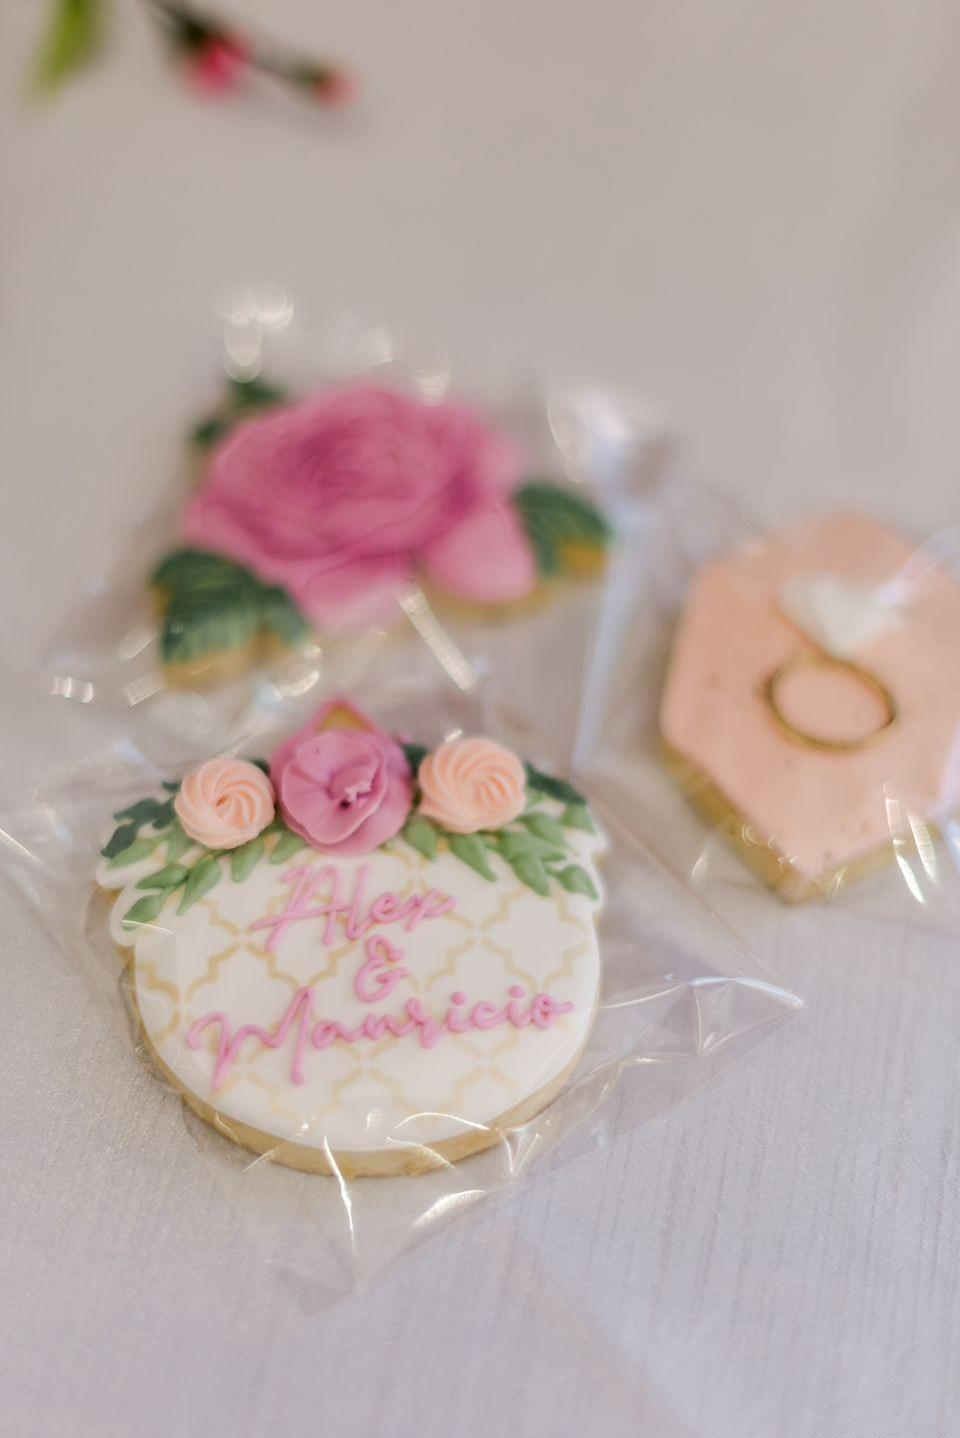 """<p>Haley had ordered beautiful cookies from <a href=""""https://www.surelysweetsbakery.com/"""" rel=""""nofollow noopener"""" target=""""_blank"""" data-ylk=""""slk:Surely Sweets Bakery"""" class=""""link rapid-noclick-resp"""">Surely Sweets Bakery</a> in Tulsa. They were almost too pretty to eat! (Notice I said """"almost..."""")</p>"""